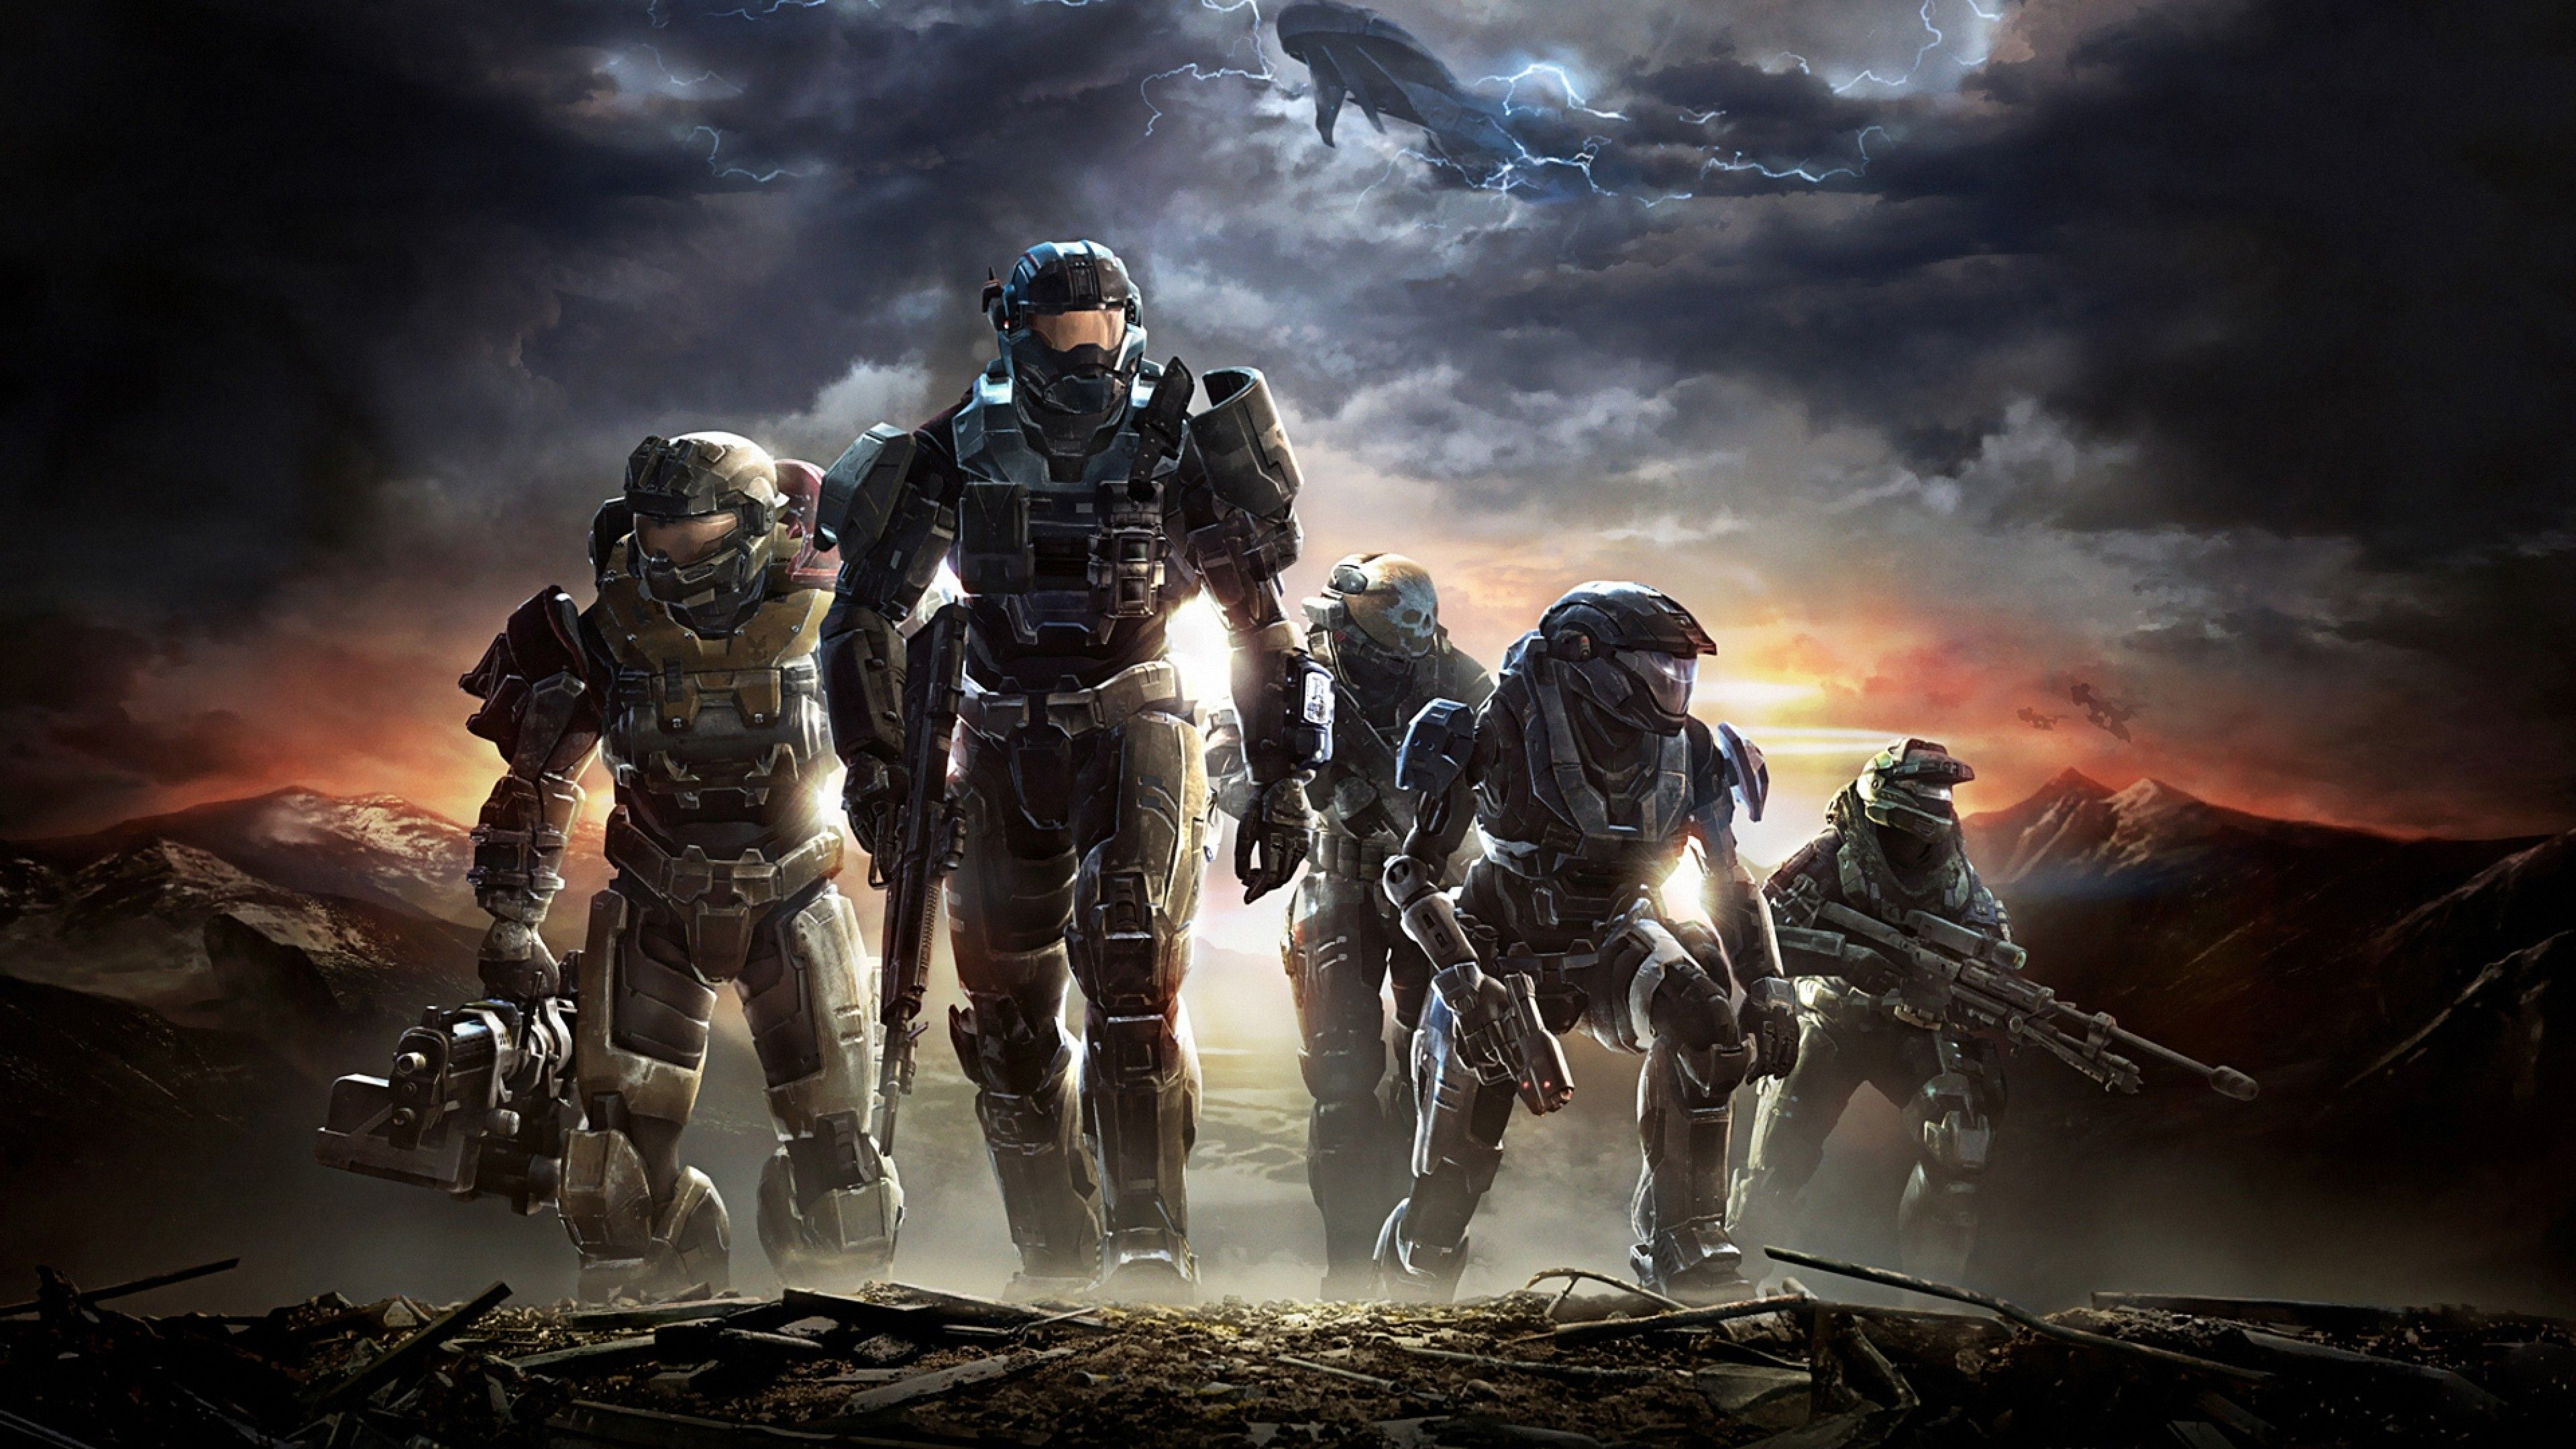 halo 2 backgrounds, halo 5 guardians wallpaper